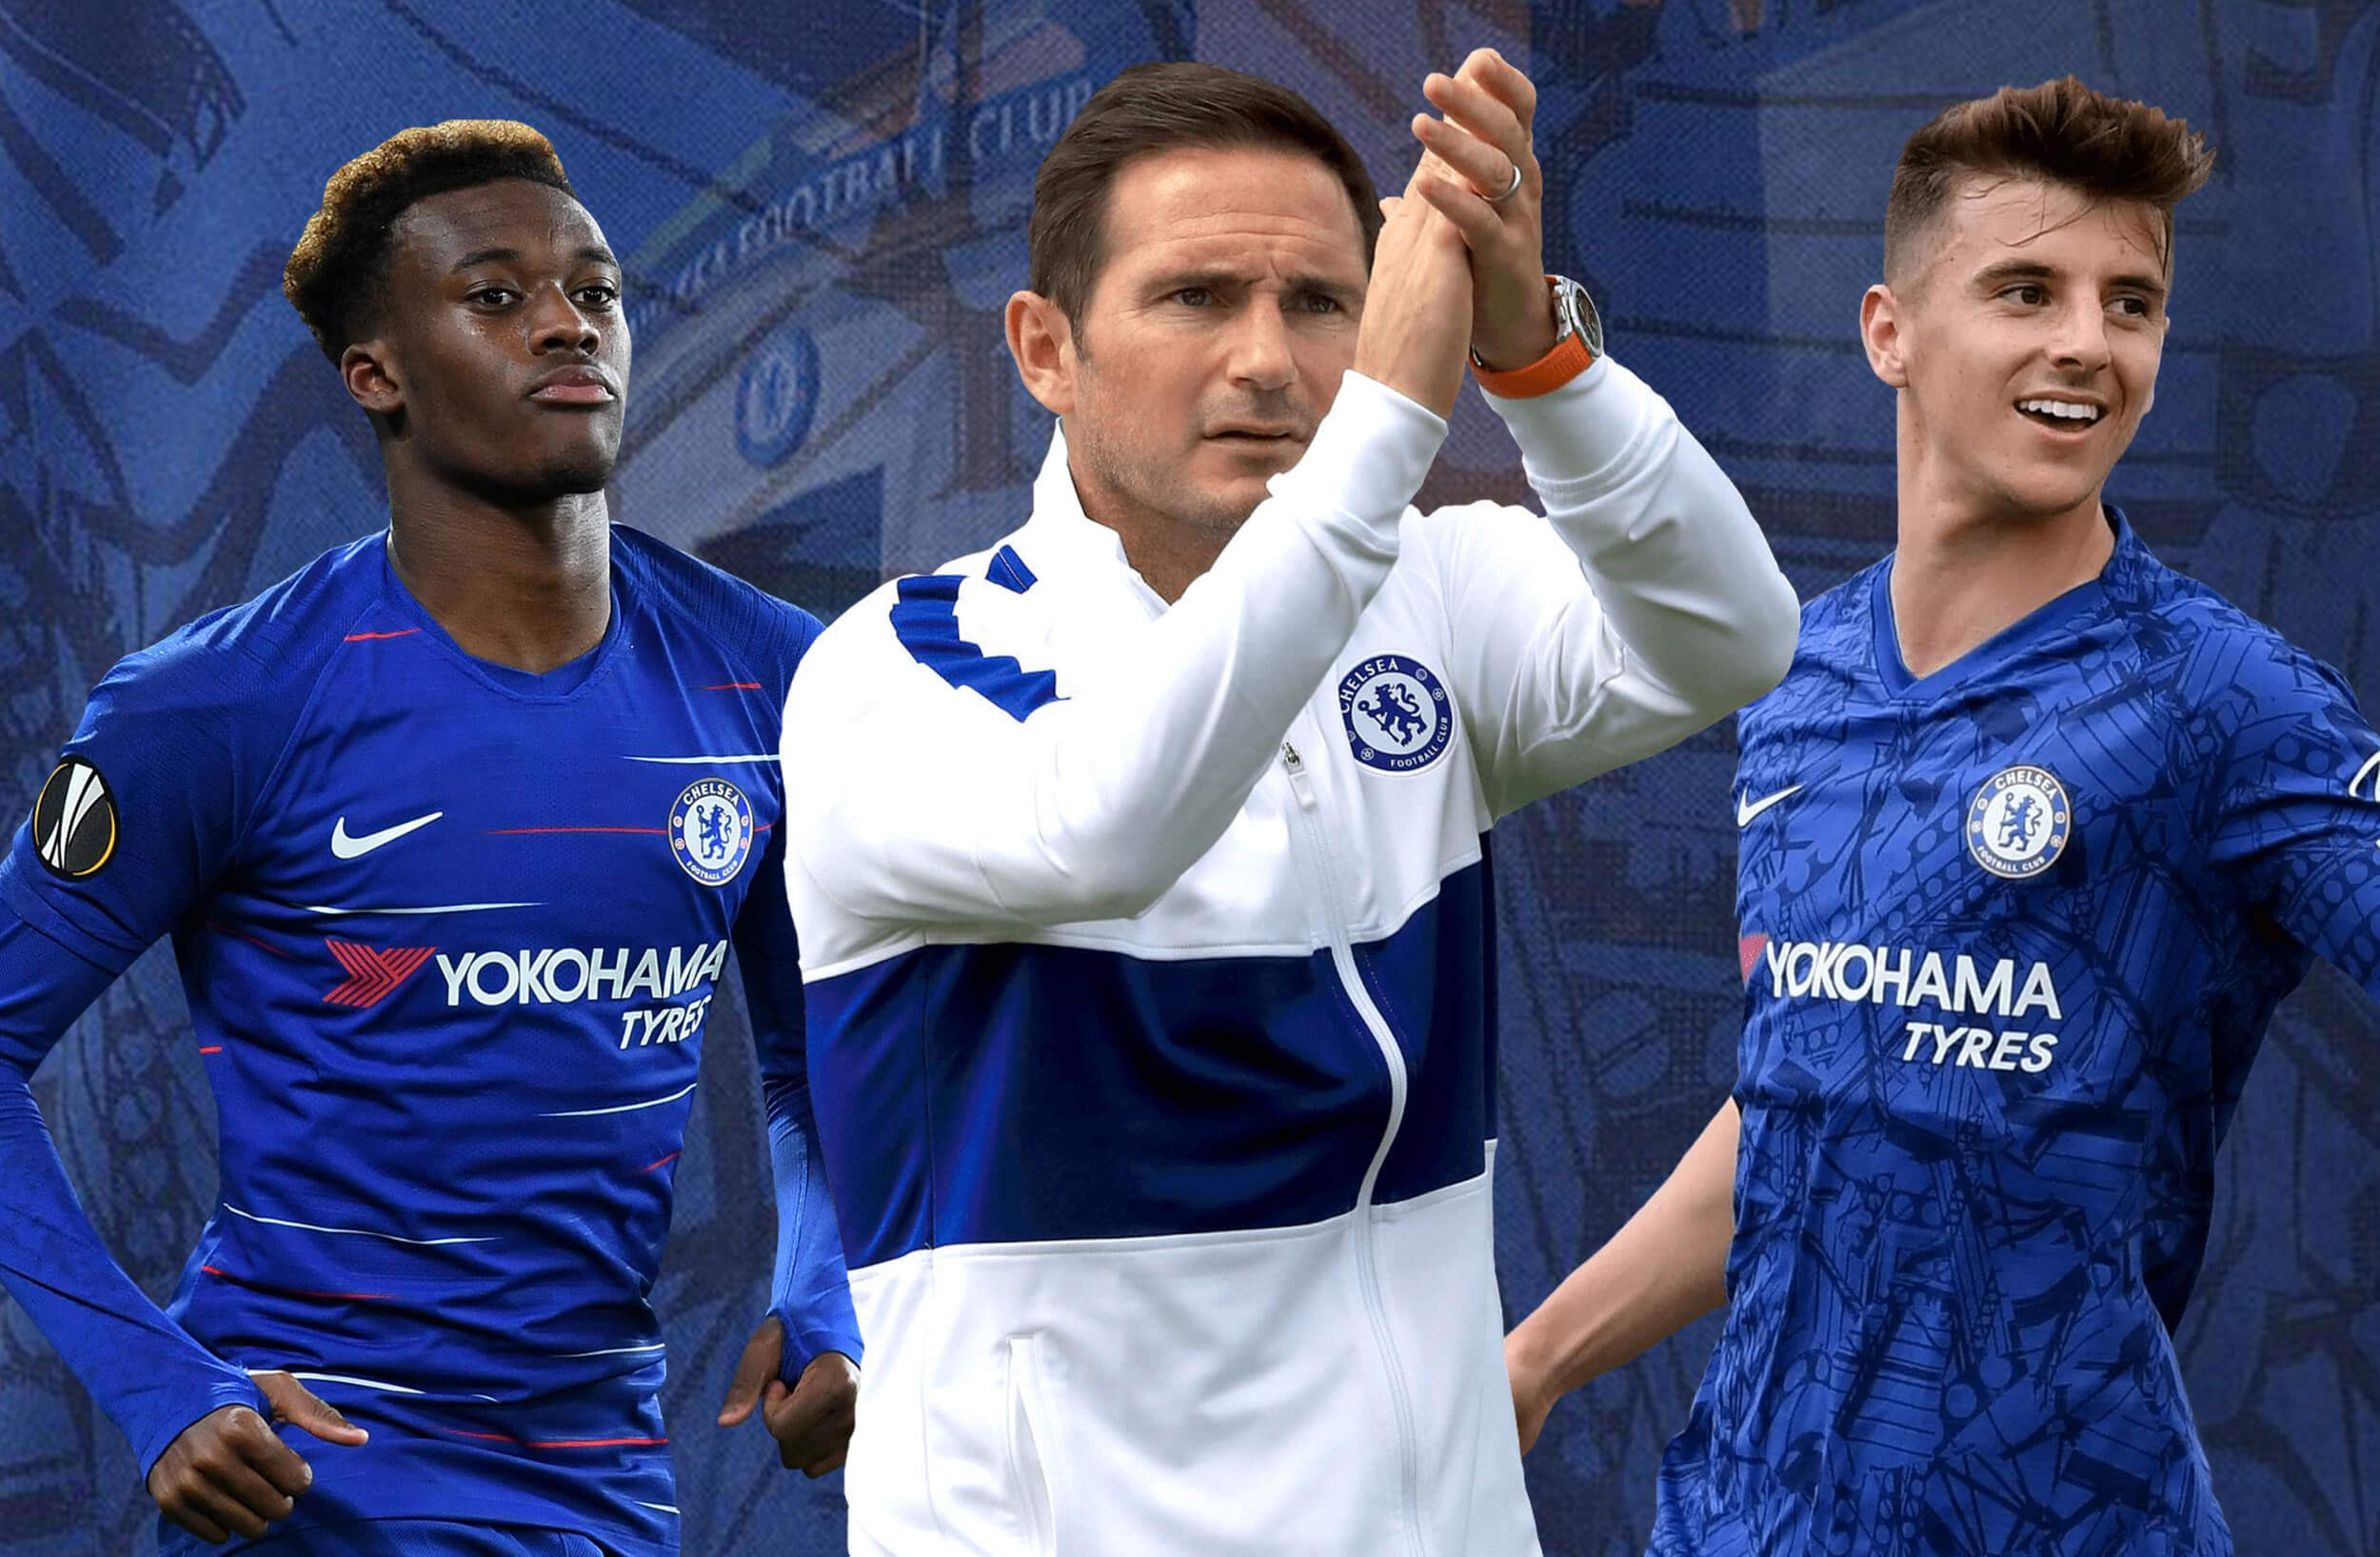 soi-keo-leicester-city-vs-chelsea-luc-19h30-ngay-1-2-2020-2